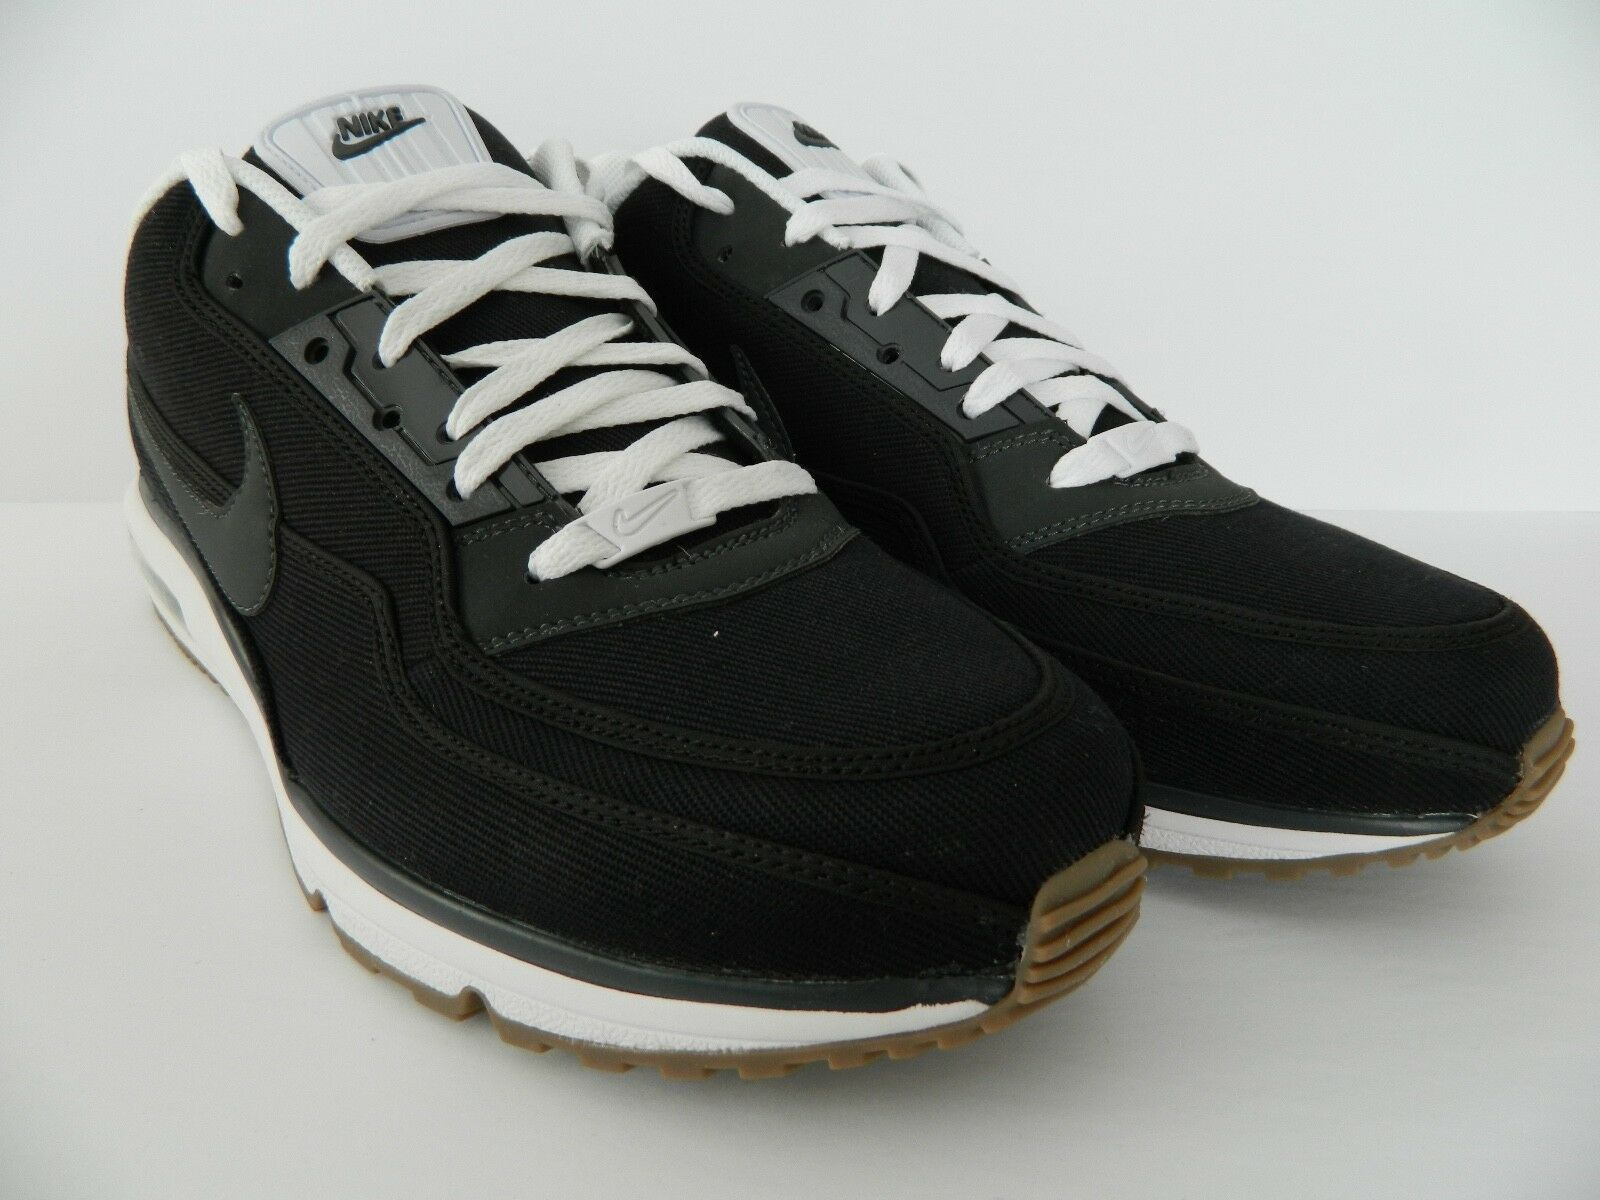 Nike air max ltd 3 txt (nero / antracite bianco nero) (746379 001) pennino